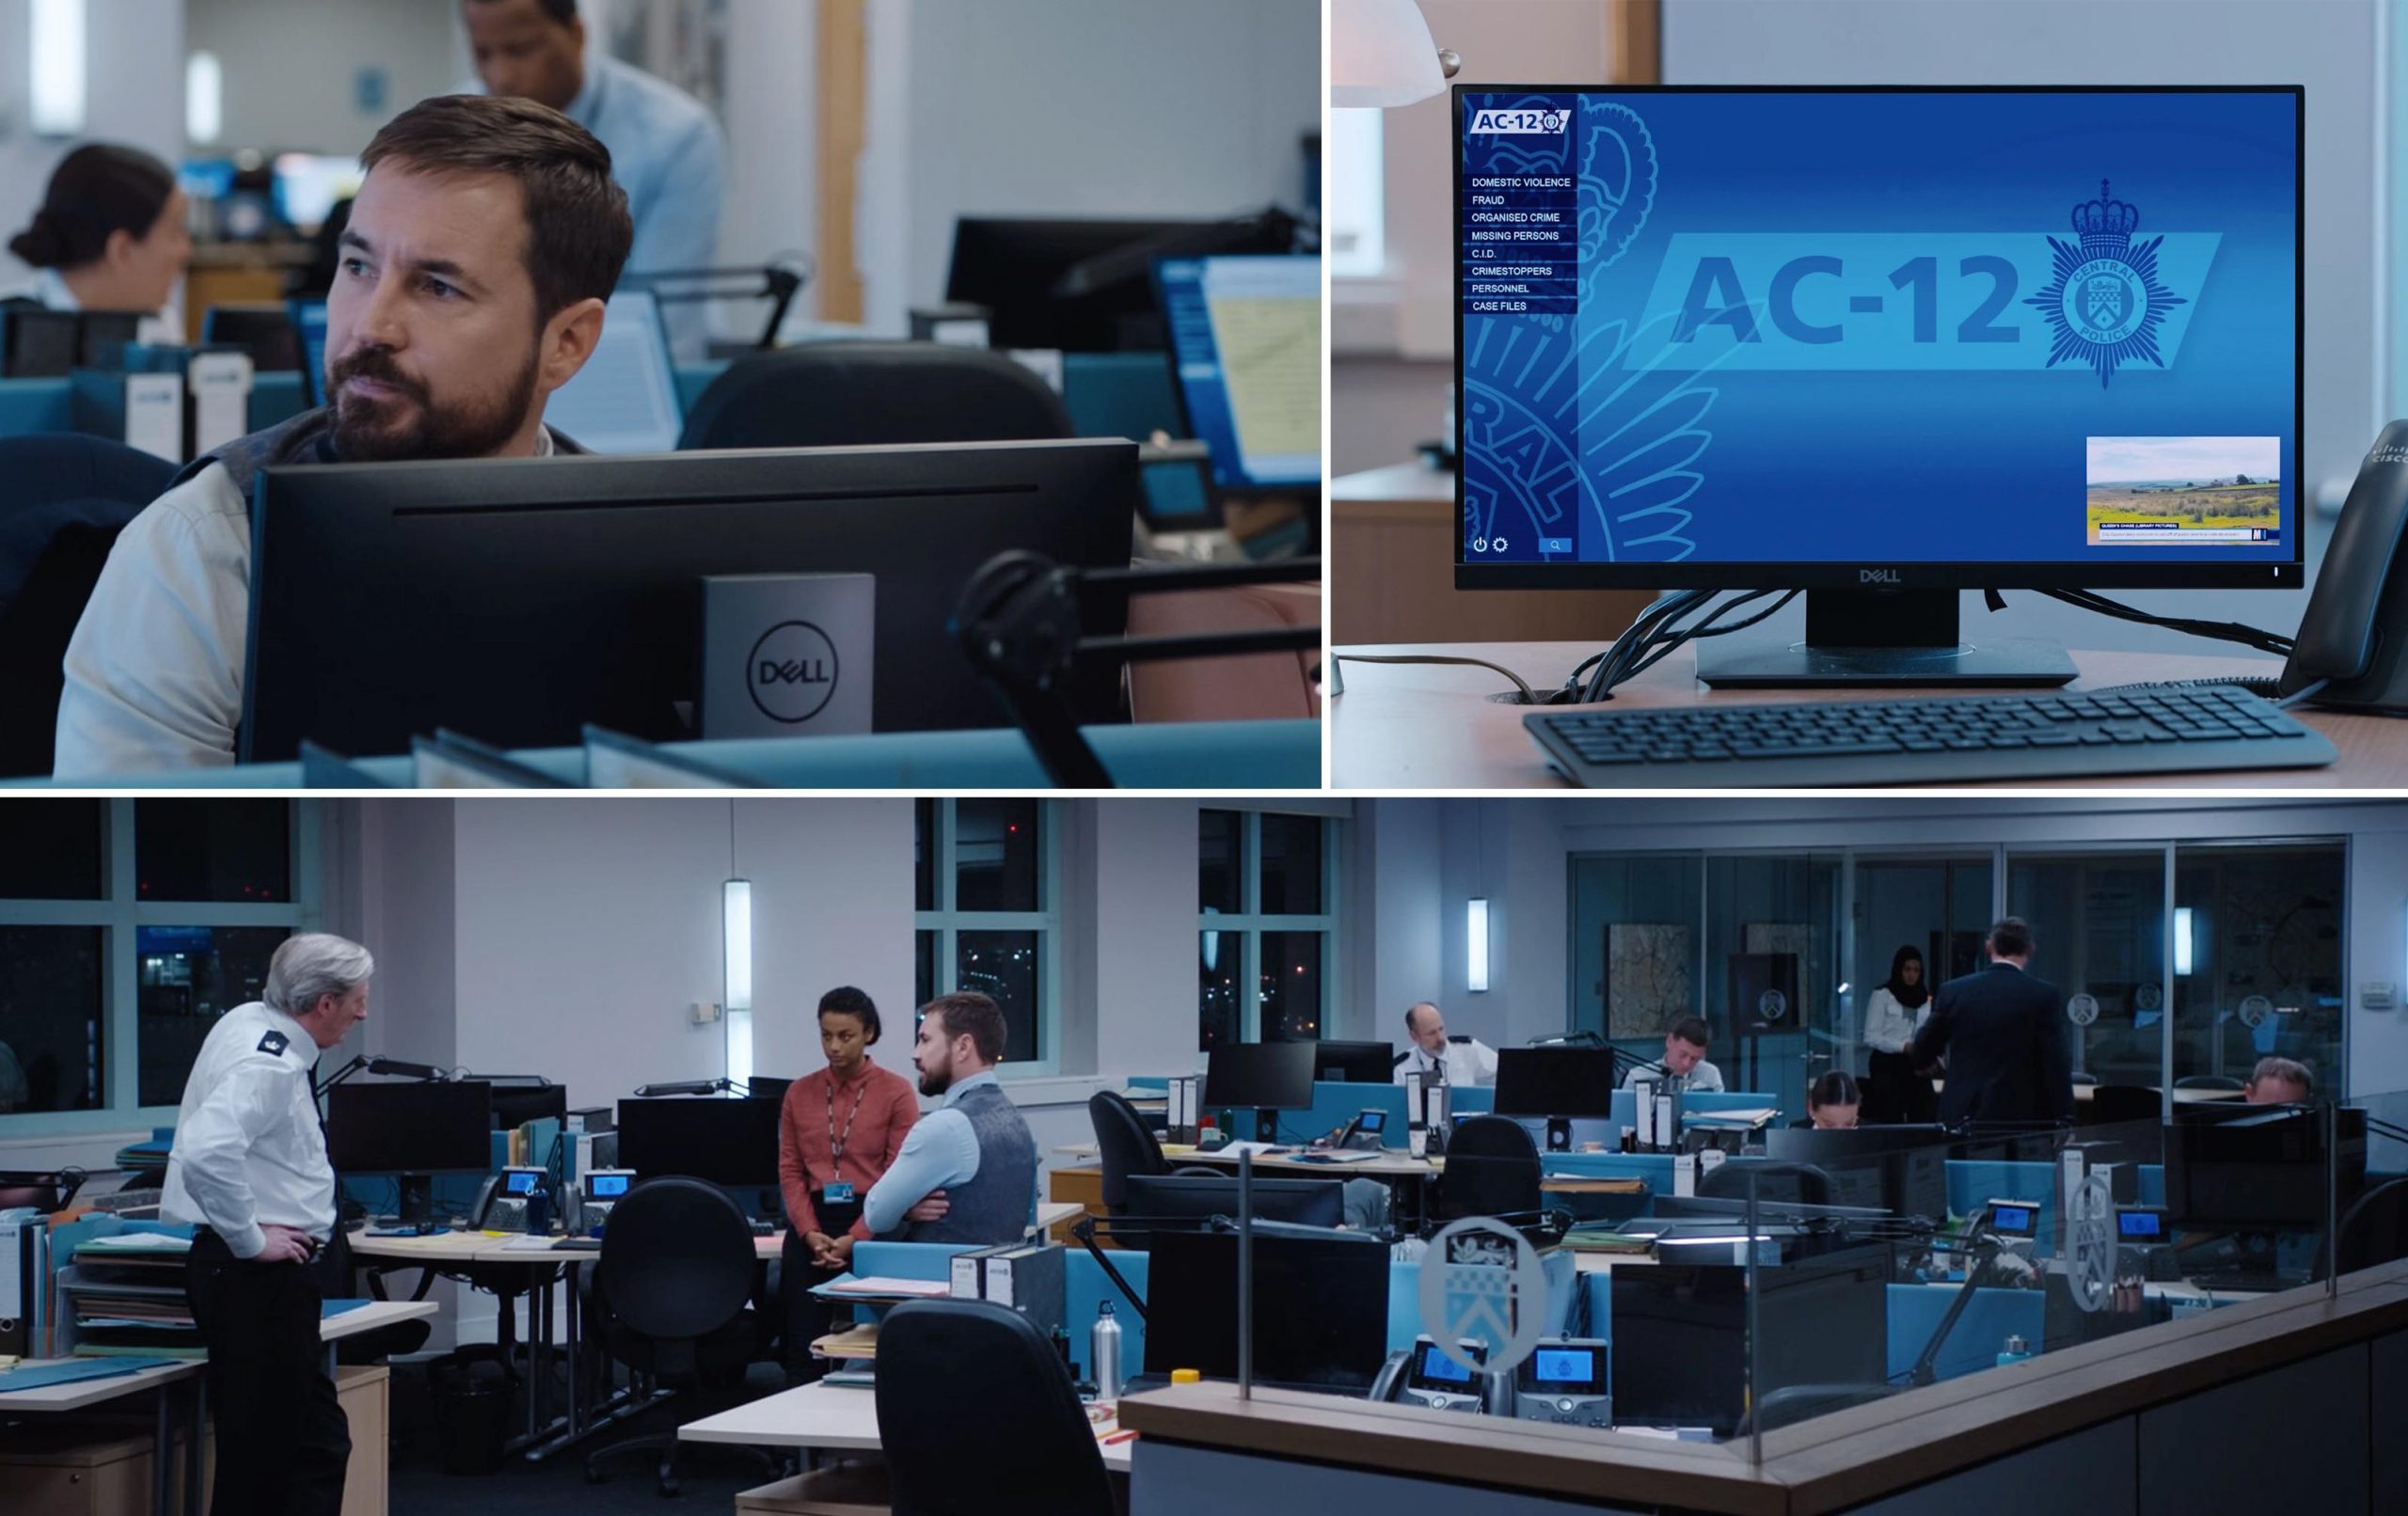 Dell product placement in season 6 of LINE OF DUTY